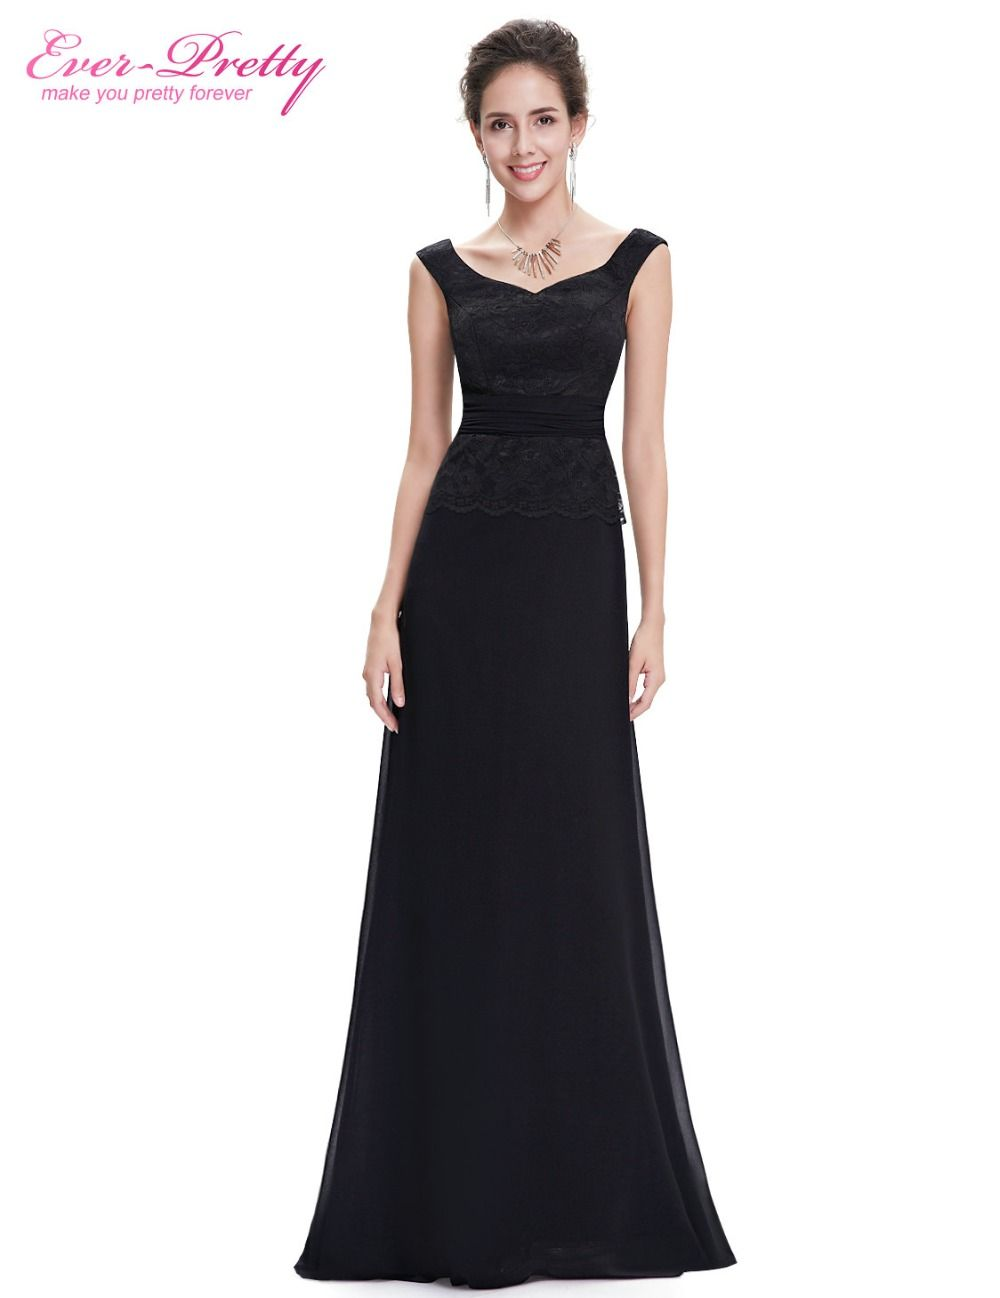 Chiffon prom dress ever pretty he elegant black sleeveless new